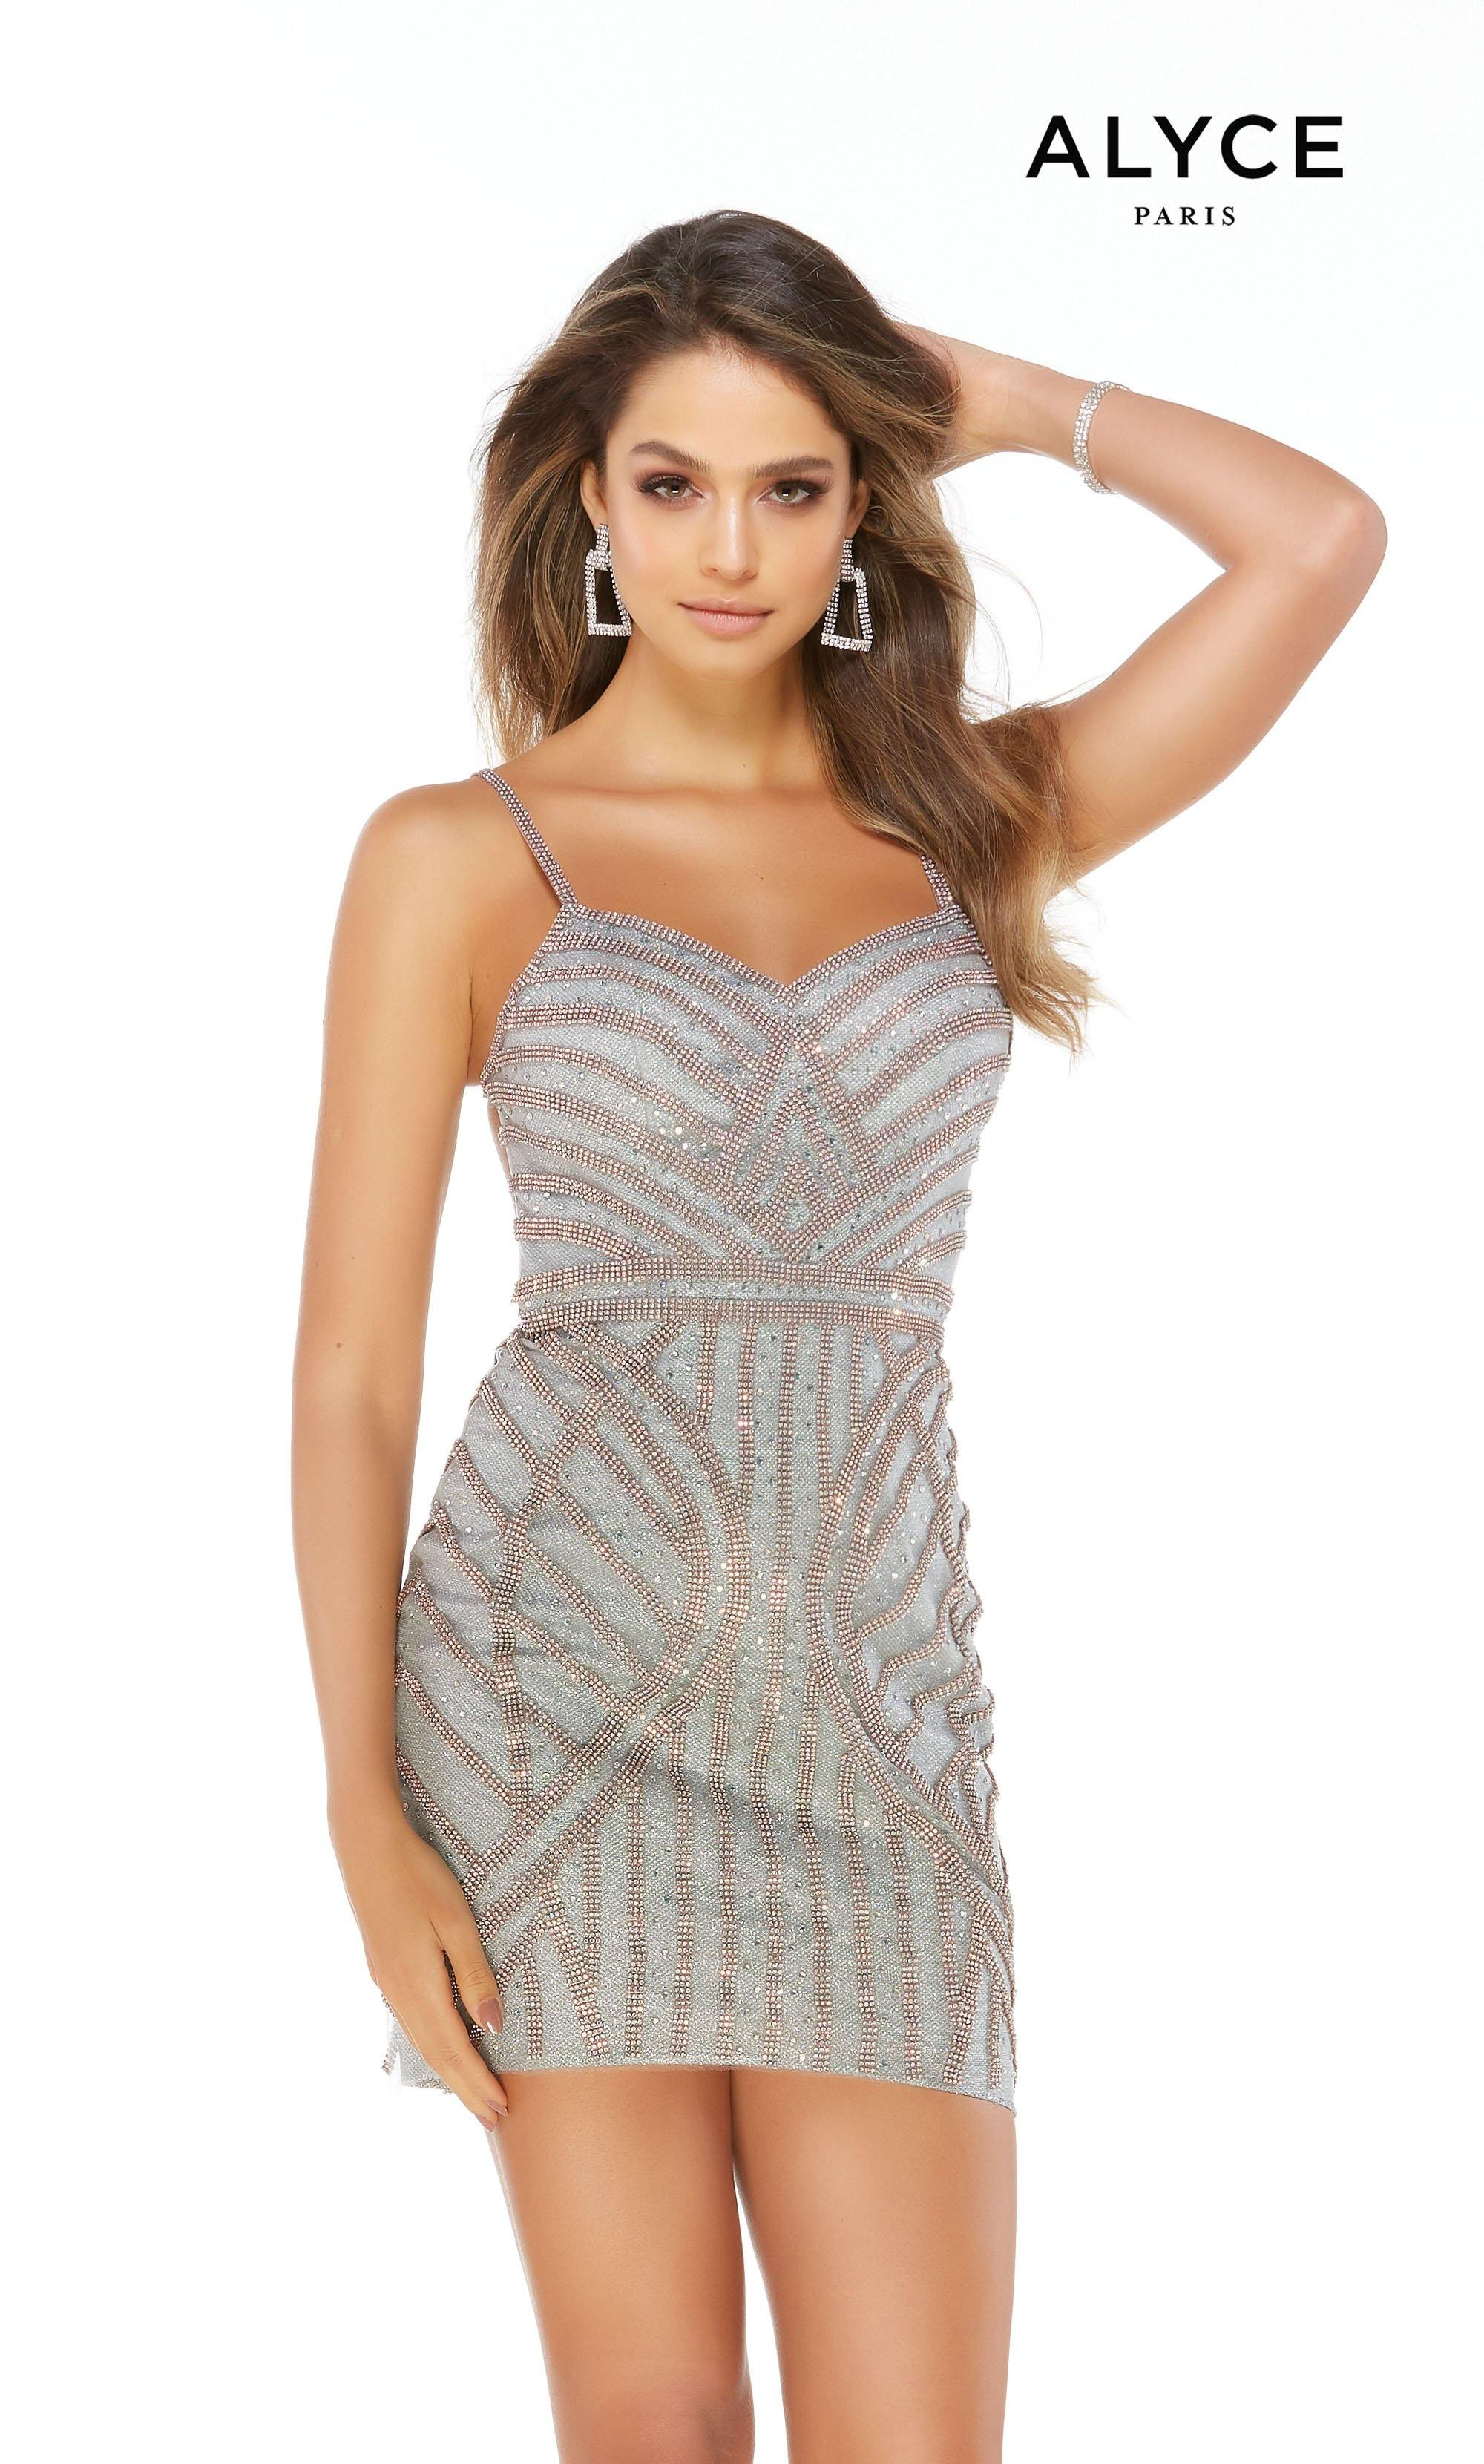 Dark Silver fully embellished mini dress with a sweetheart neckline